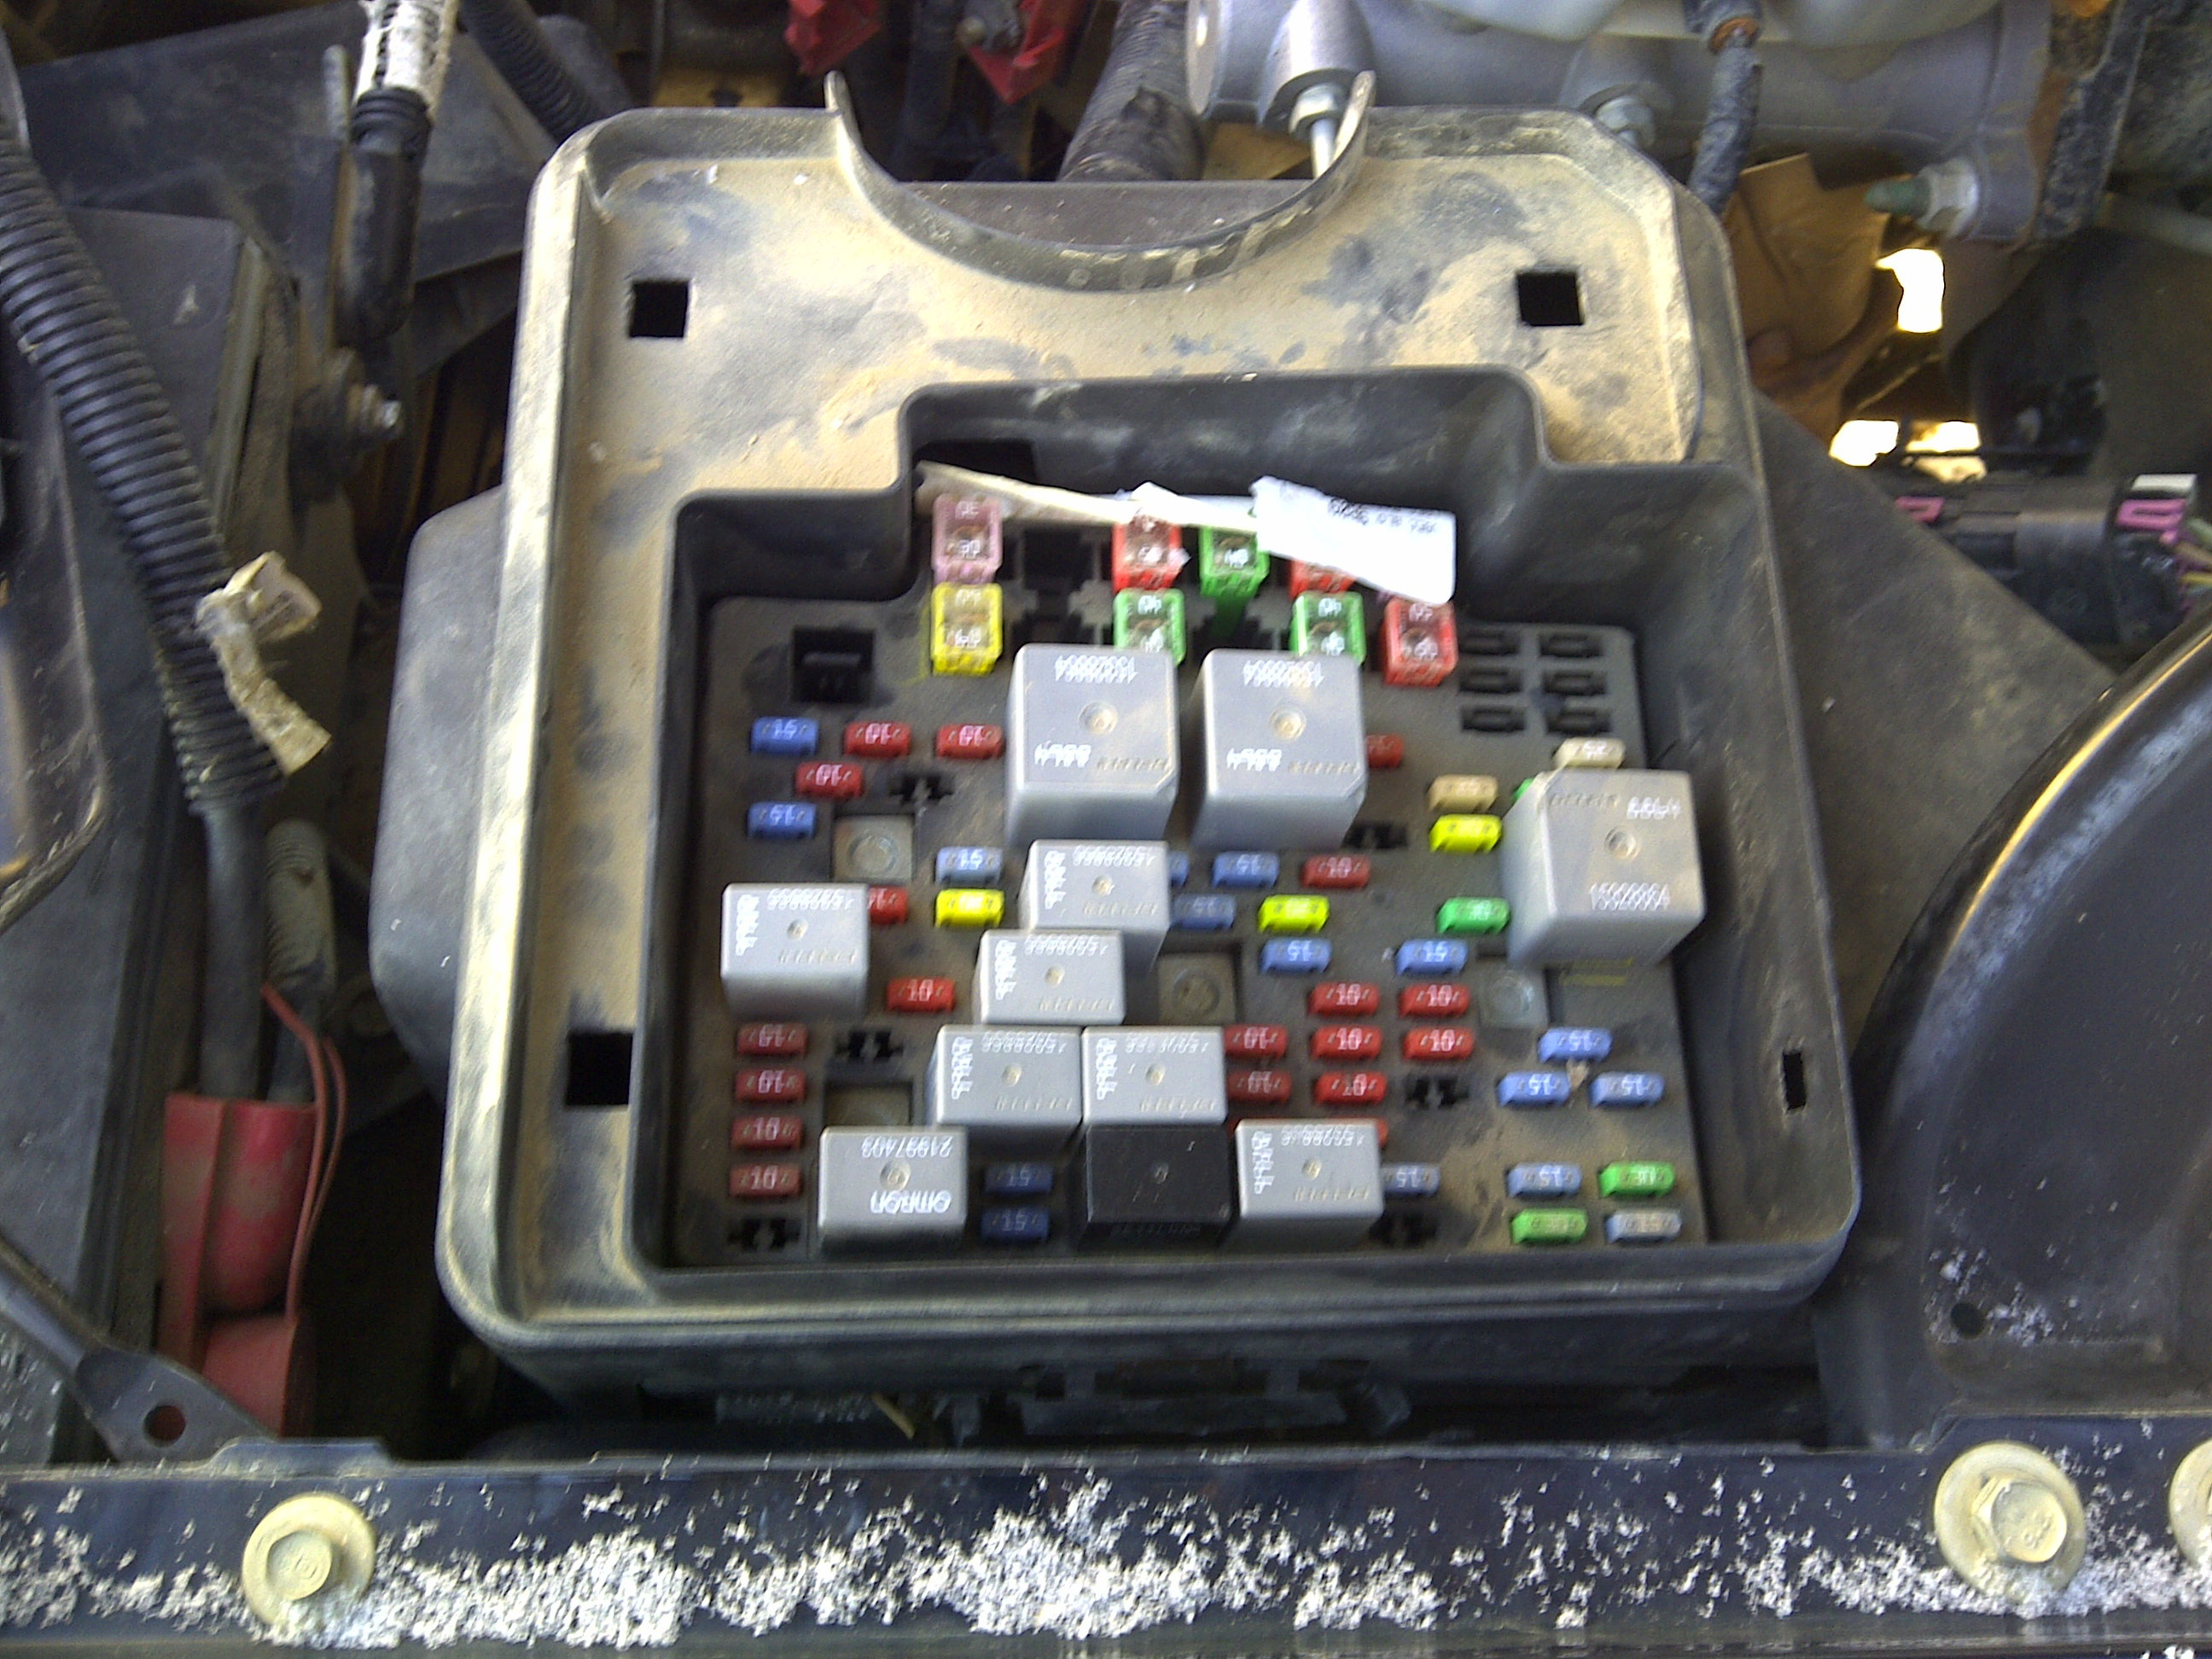 2003 Sterling Fuse Box Gmc 2500 Series I Have A 2007 Gmc Sierra Classic 2500 Crew